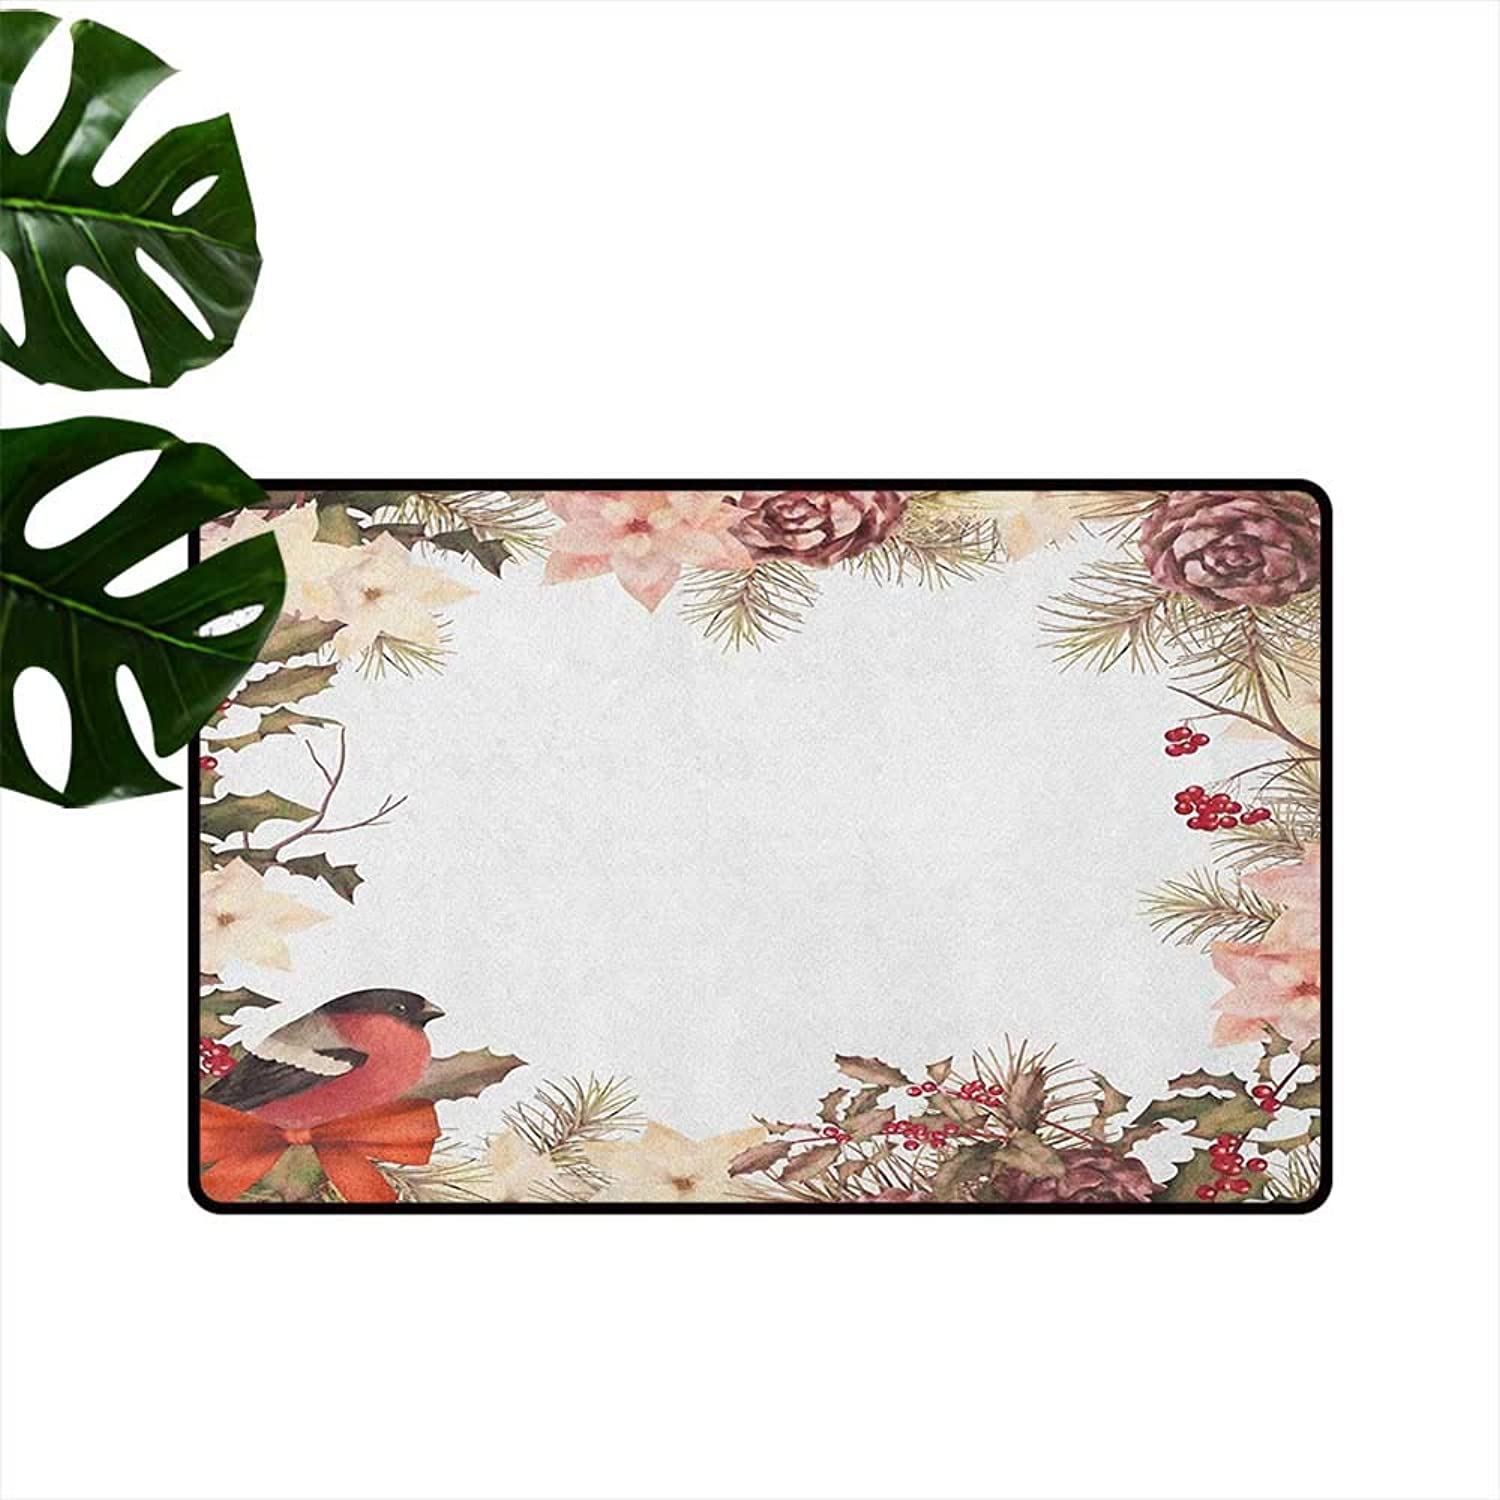 New Year Large Outdoor Indoor Rubber Doormat Eurasian Bullfinch Motif with Cedar Branch Holly Berries Vintage Mildew Proof W29 x L39 Dried pink Coral Pale Peach